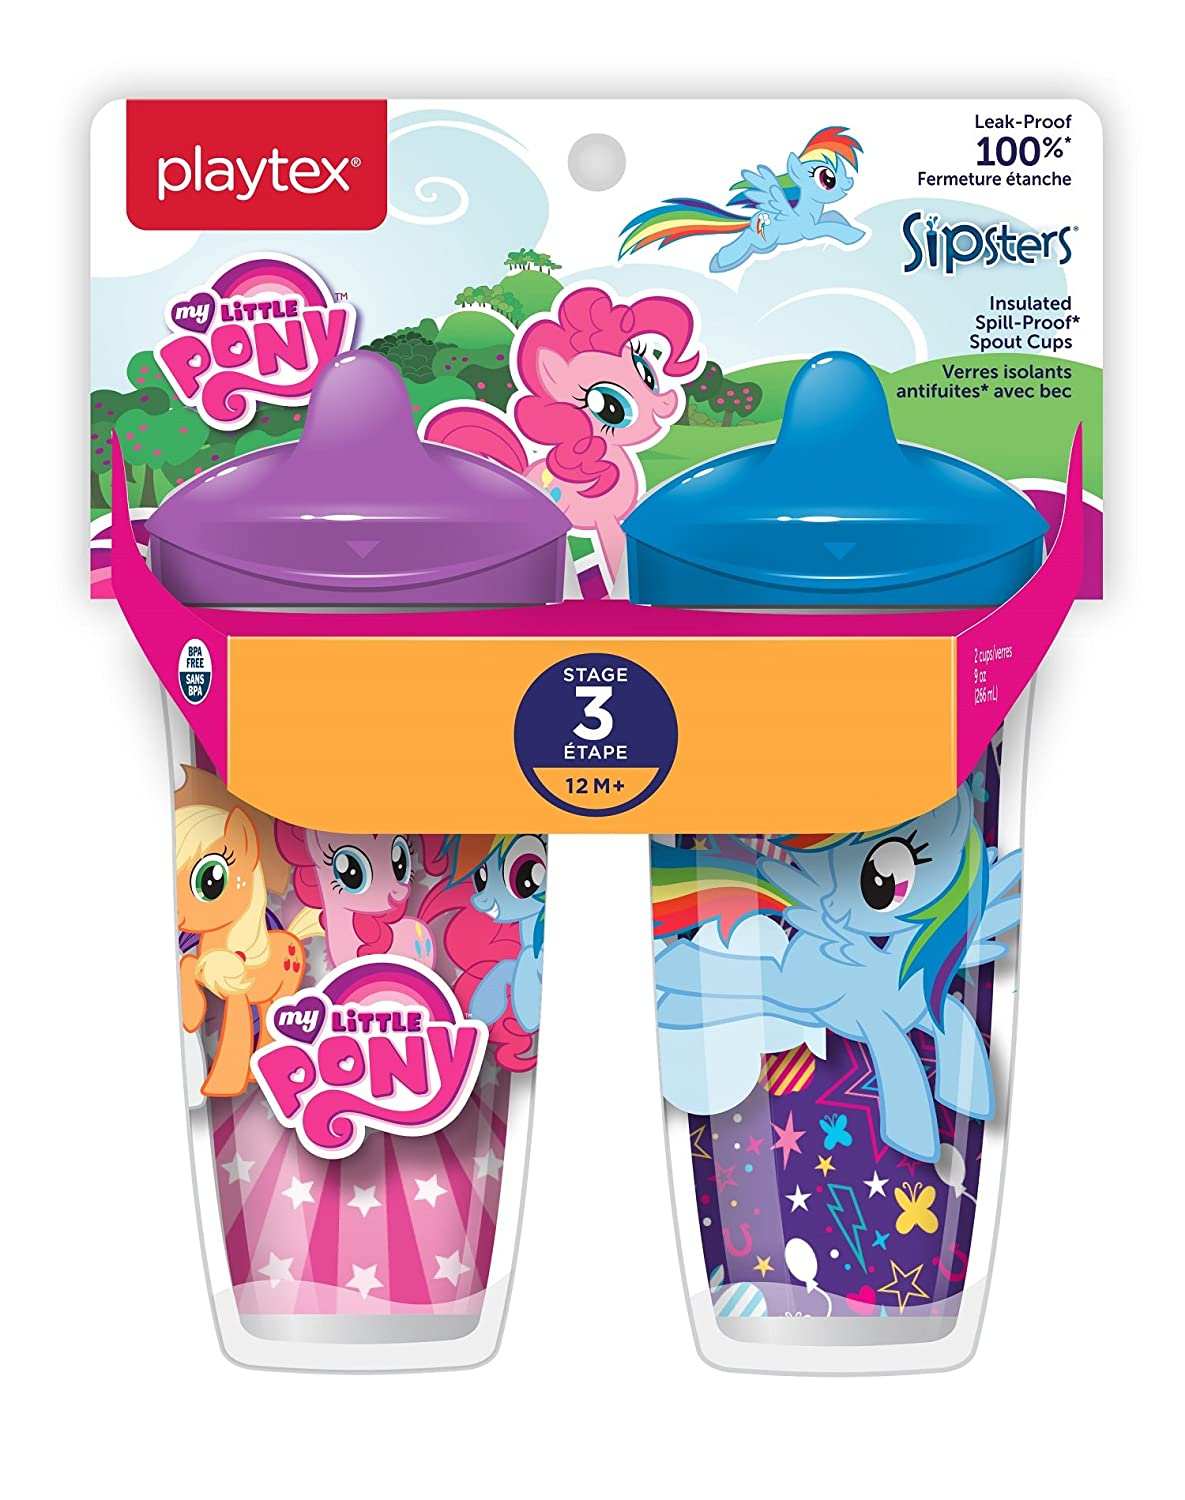 Break-Proof Insulated Toddler Spout Cups for Girls 9 Ounce Leak-Proof 2 Count Playtex Sipsters Stage 3 Peppa Pig Spill-Proof